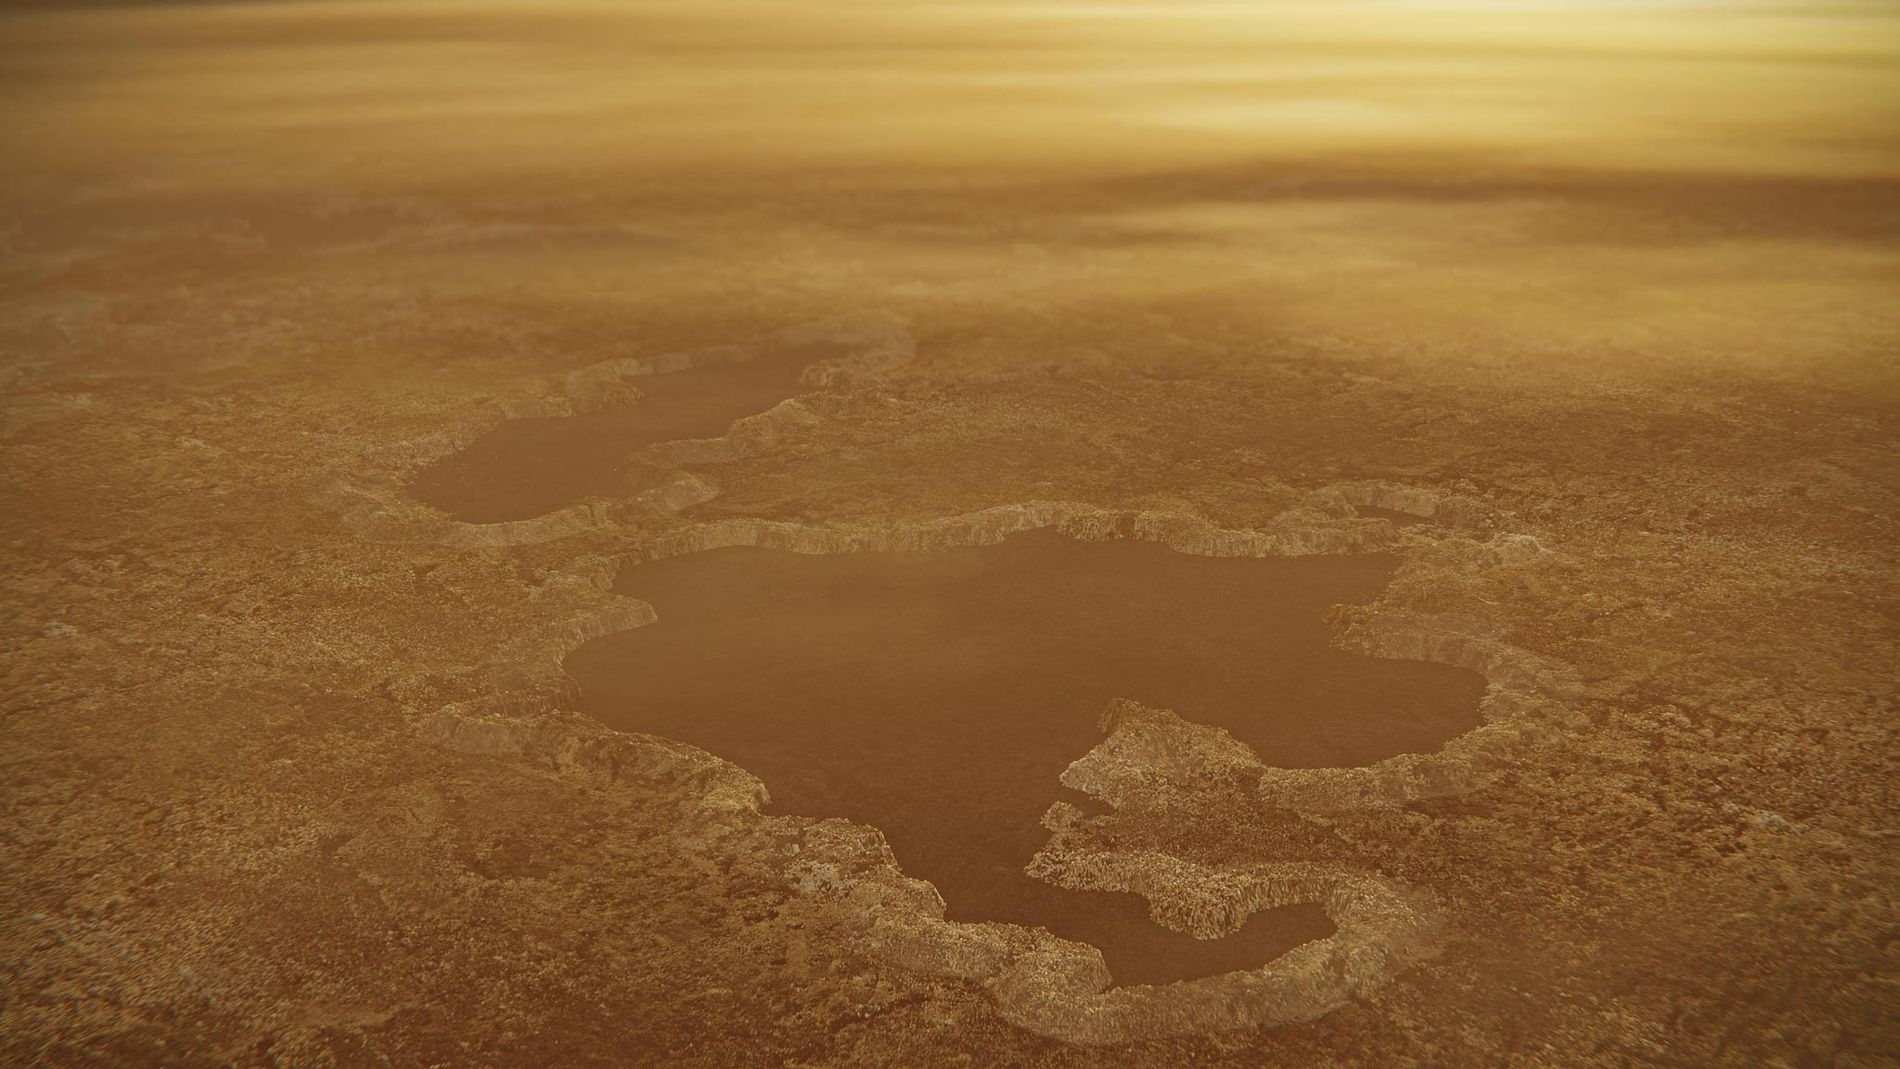 Raised rims and rampart-like features line a lake near Titan's north pole in an illustration. Careful comparisons between Earth and this icy moon of Saturn suggest that at least some of its lakes formed due to ancient explosions of underground gases.